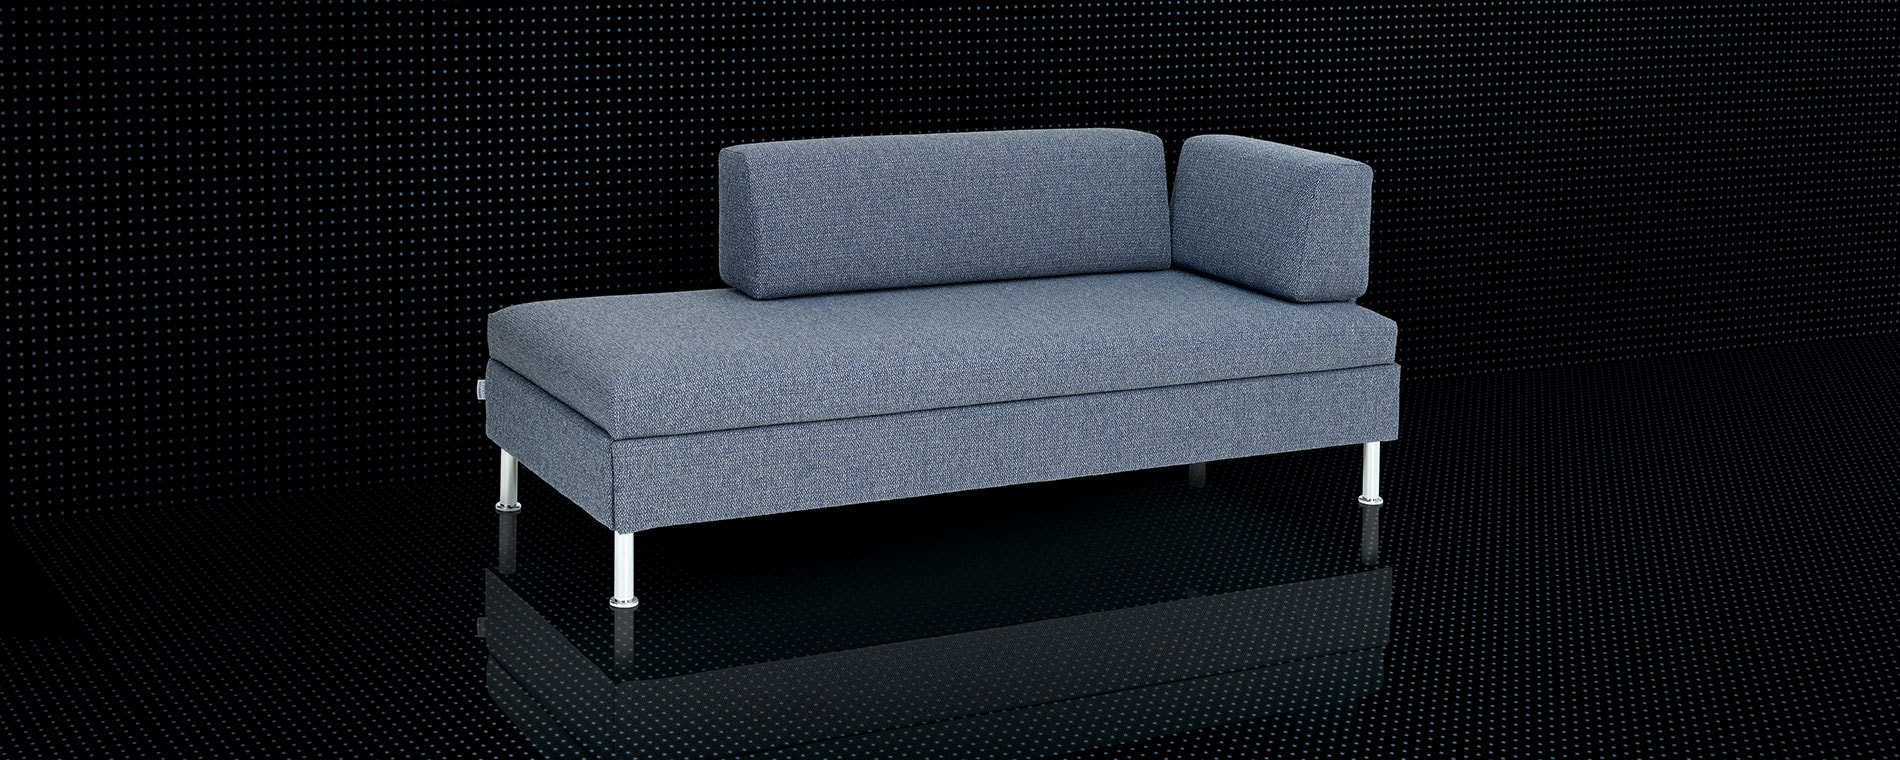 Das Bettsofa BED for LIVING Singolo in blau mit Säulenfüssen.